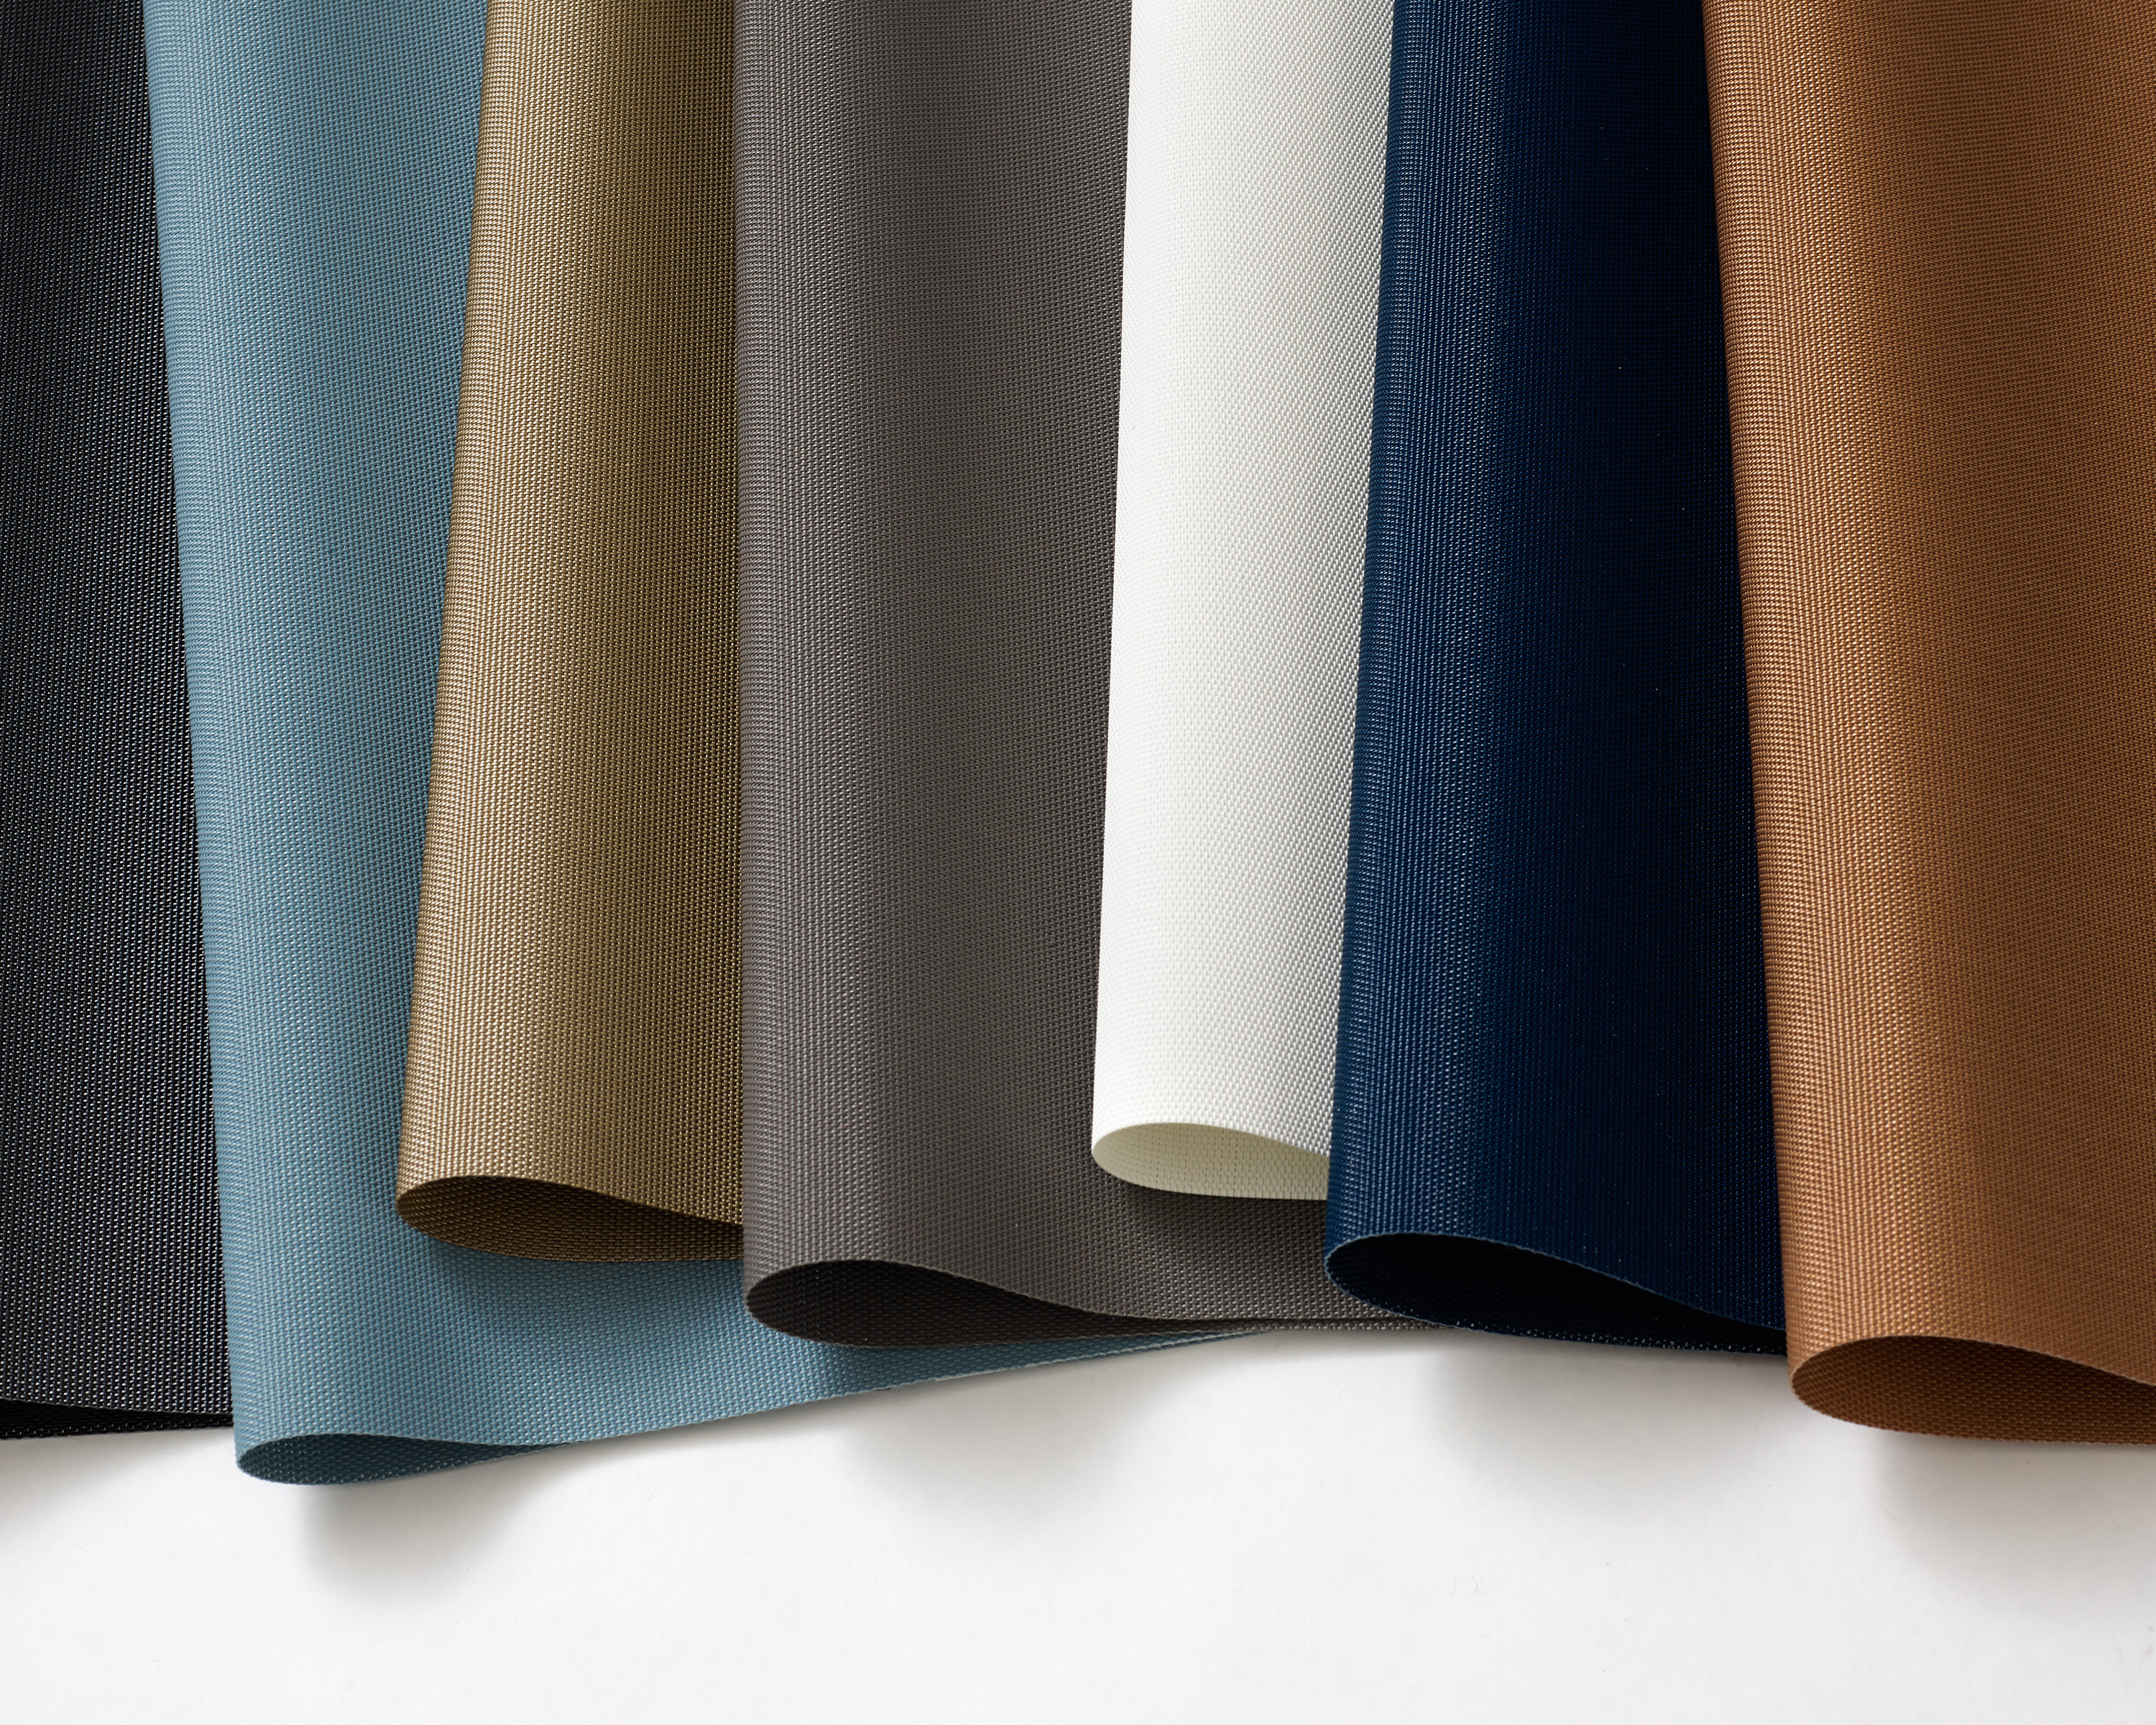 Acme Wallcovering Knolltextiles